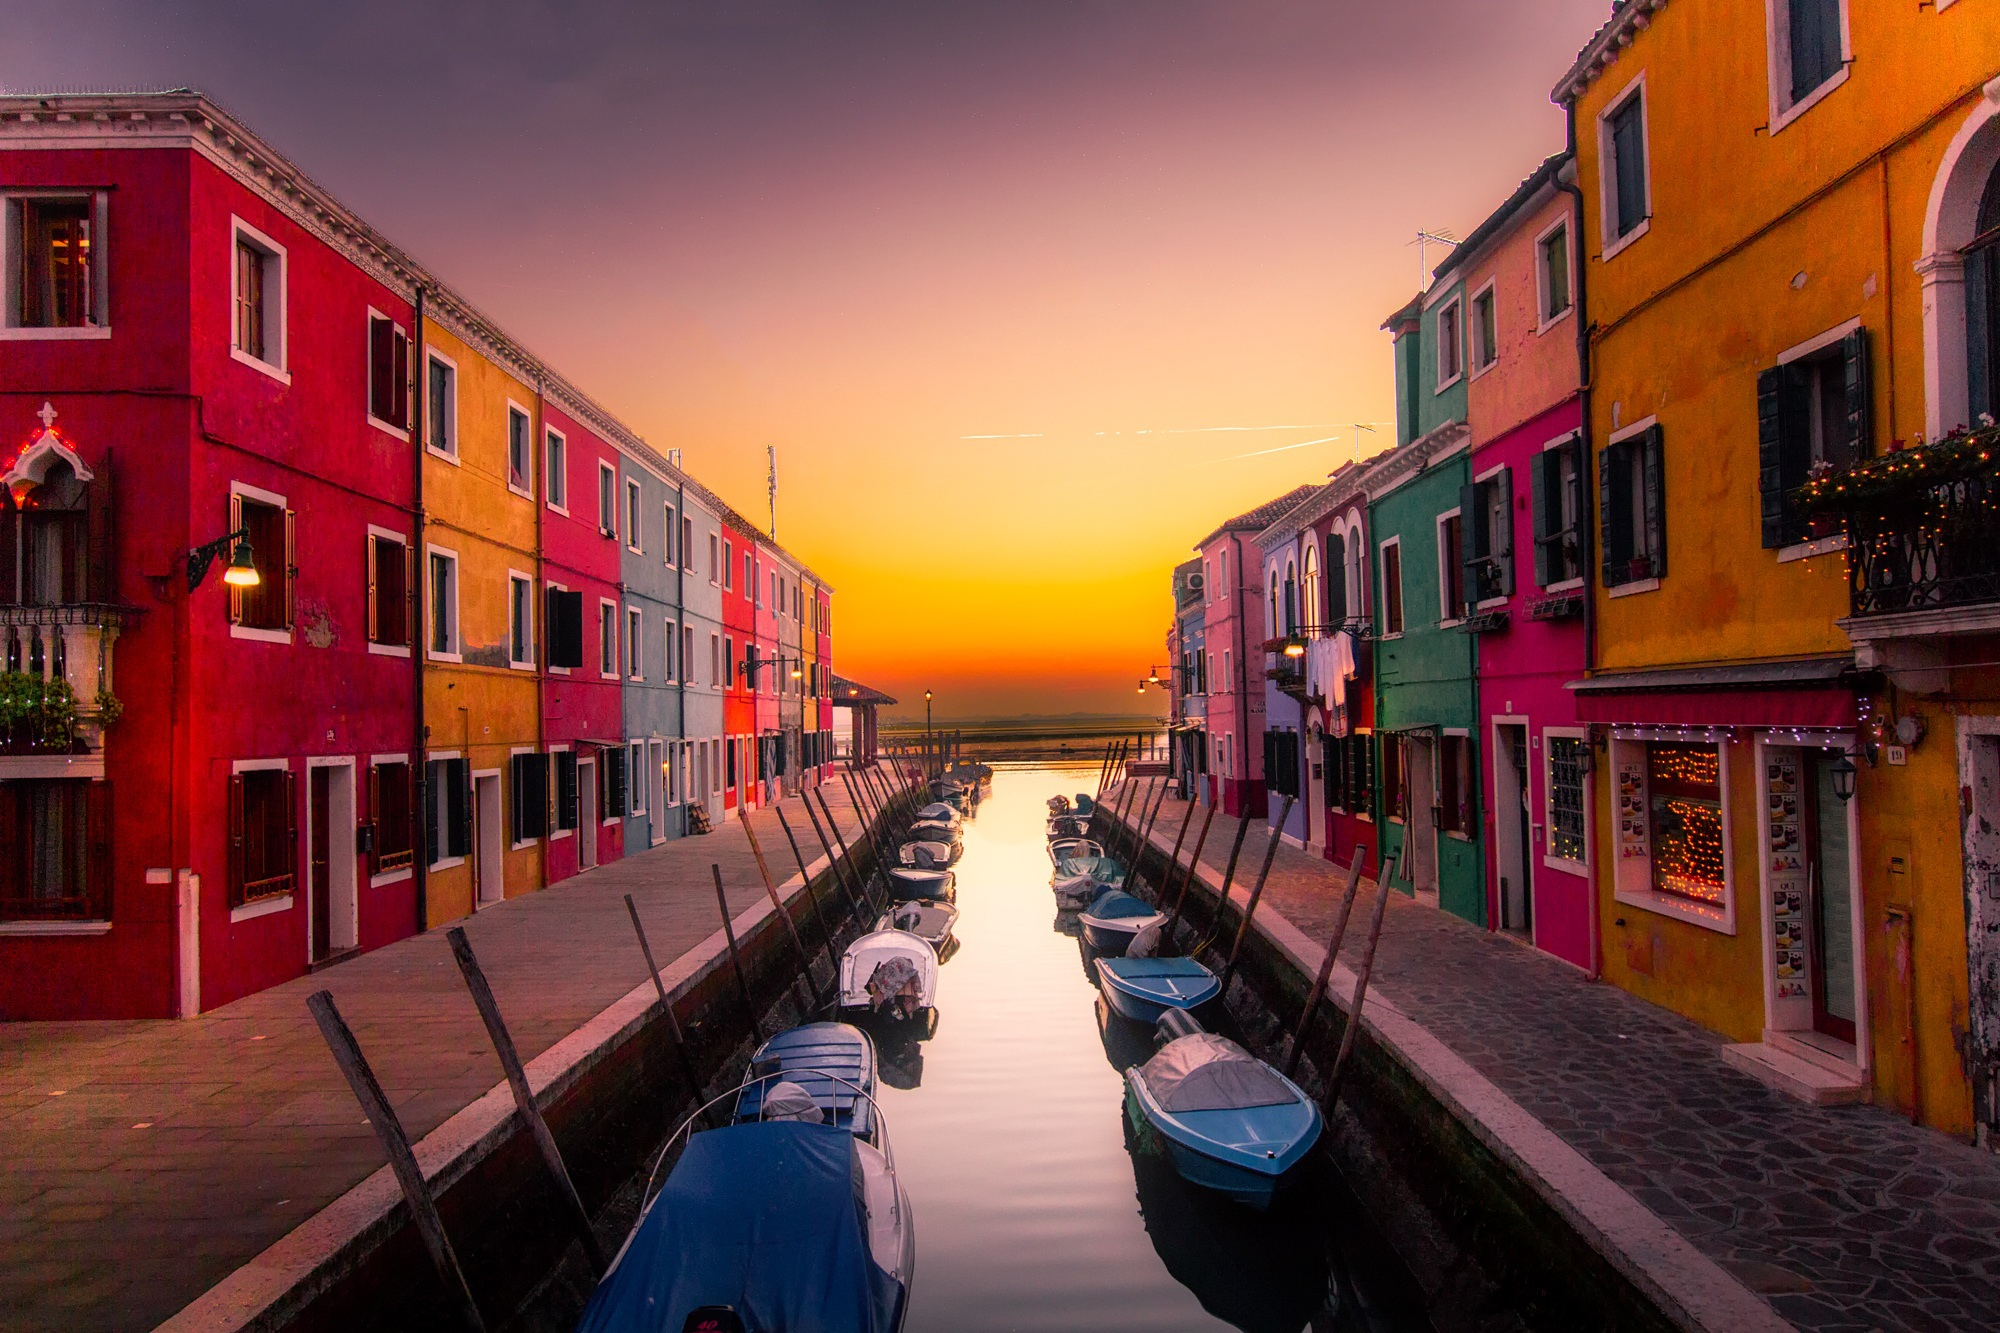 Boats Buildings Canal Color Venice Free Stock Photo - NegativeSpace